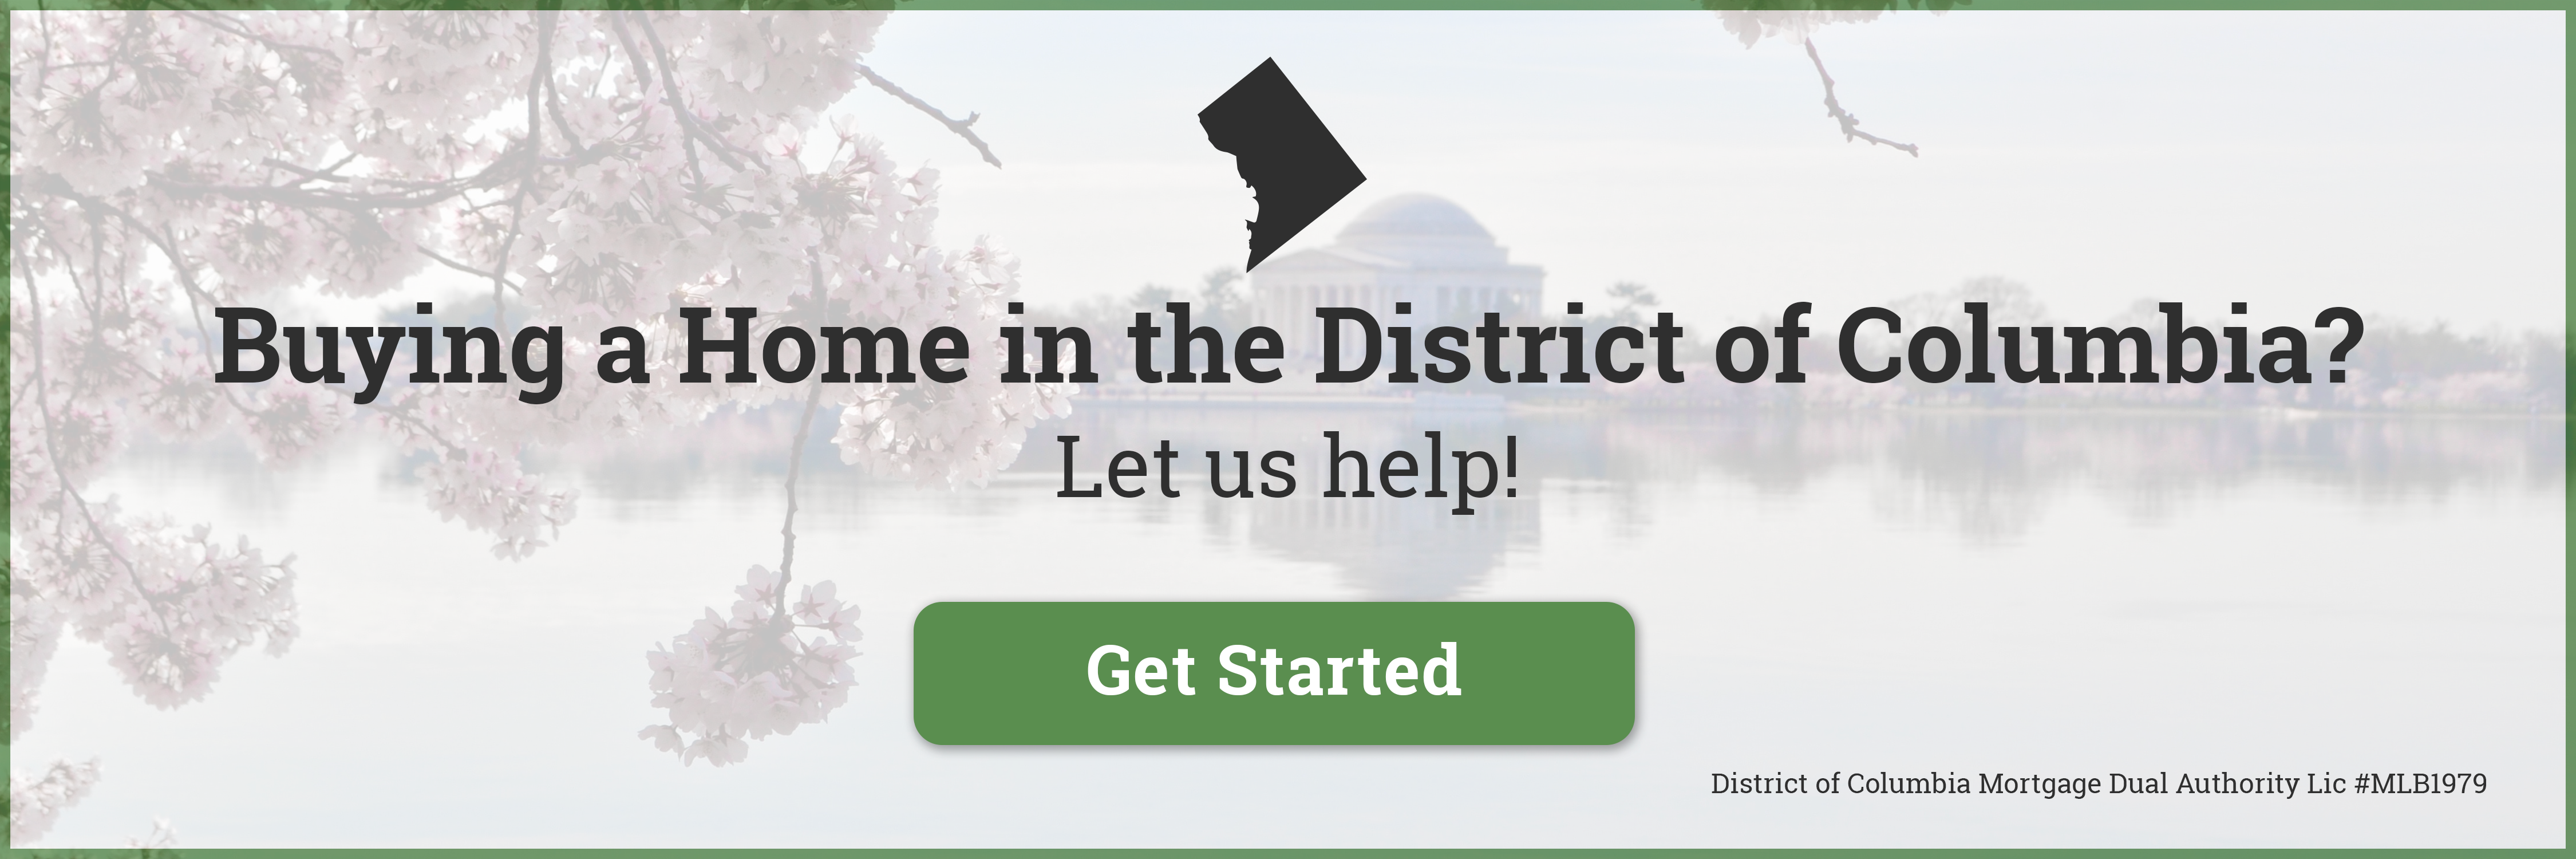 Buying a Home in the District of Columbia?